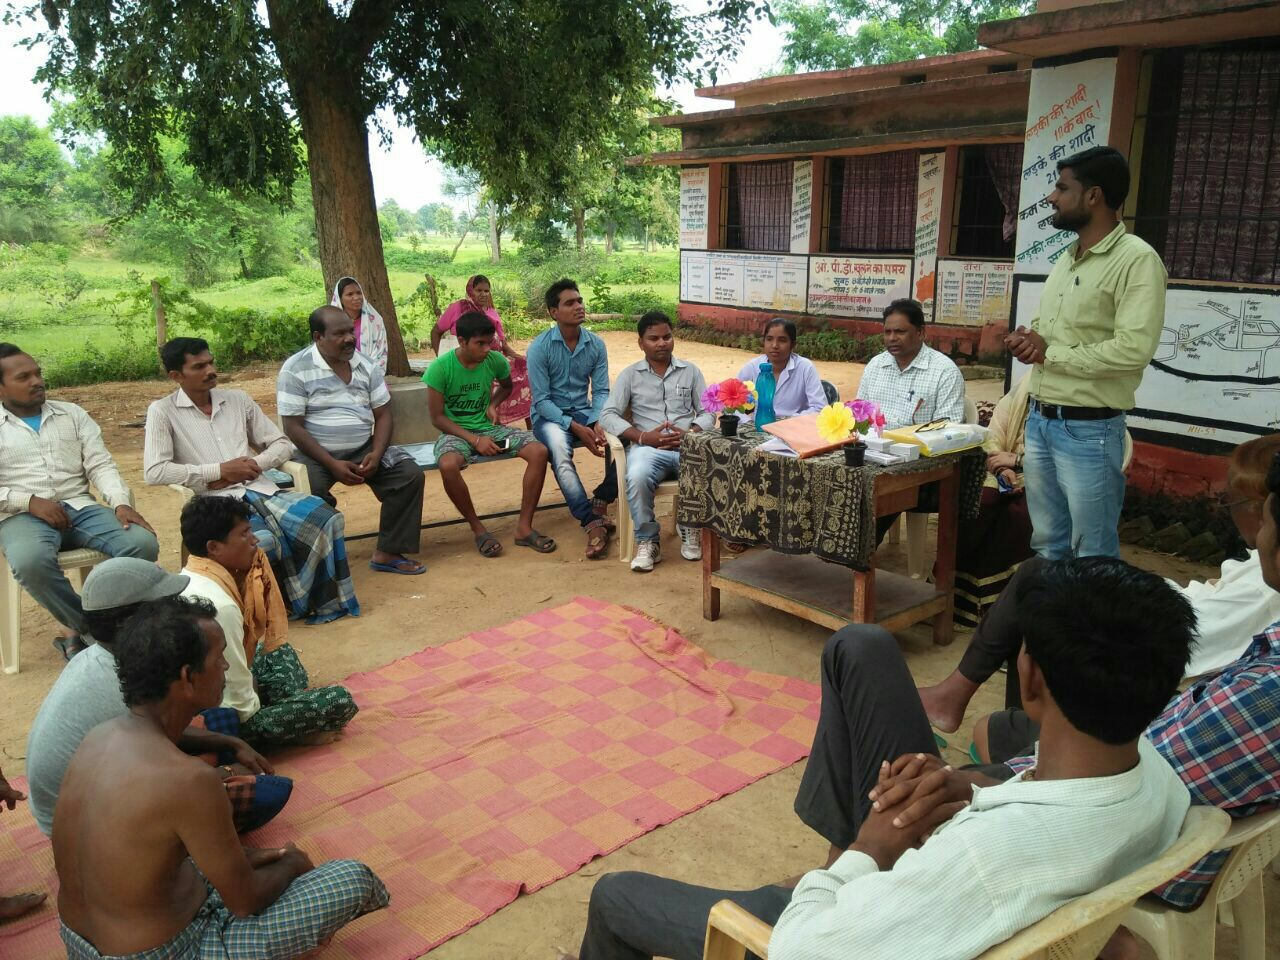 NSV <i>chaupals</i> organized with active participation of <i>mitanins</i> (ASHAs) and local role models from the community, sharing their respective stories on standing up for their families' well-being and opting for NSV.